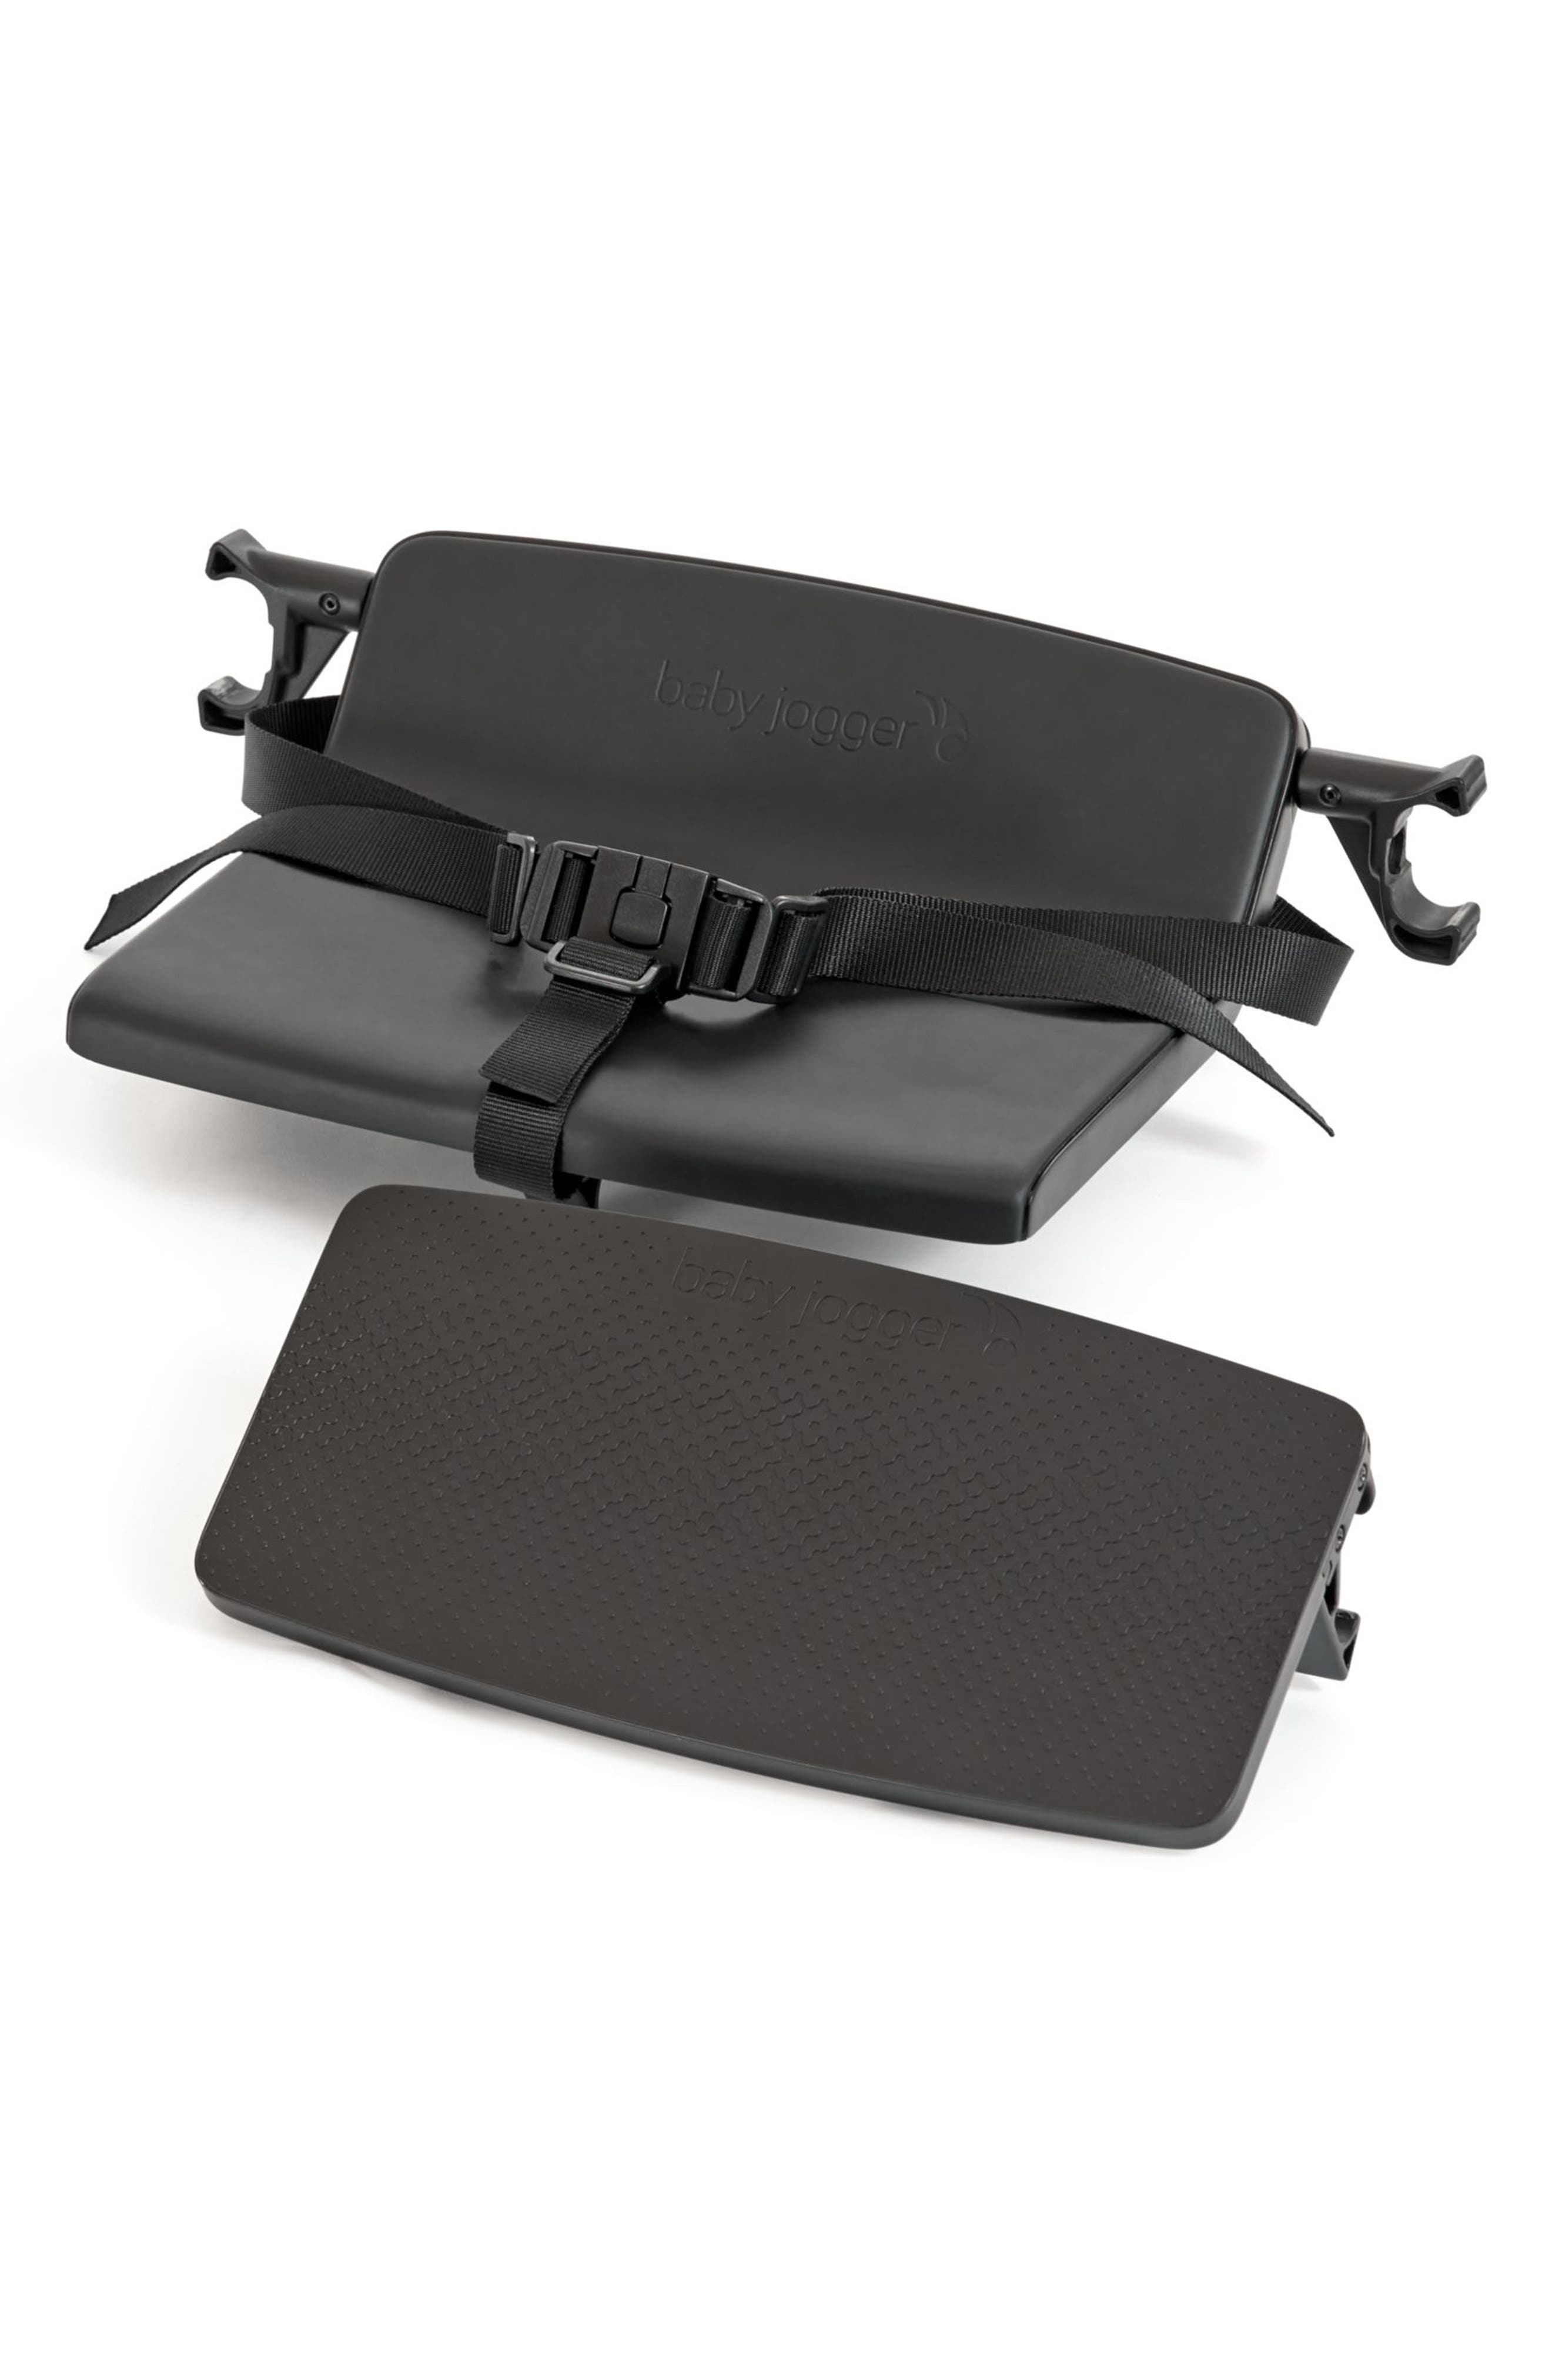 Main Image - Baby Jogger Lux Bench Seat for City Select™ Stroller